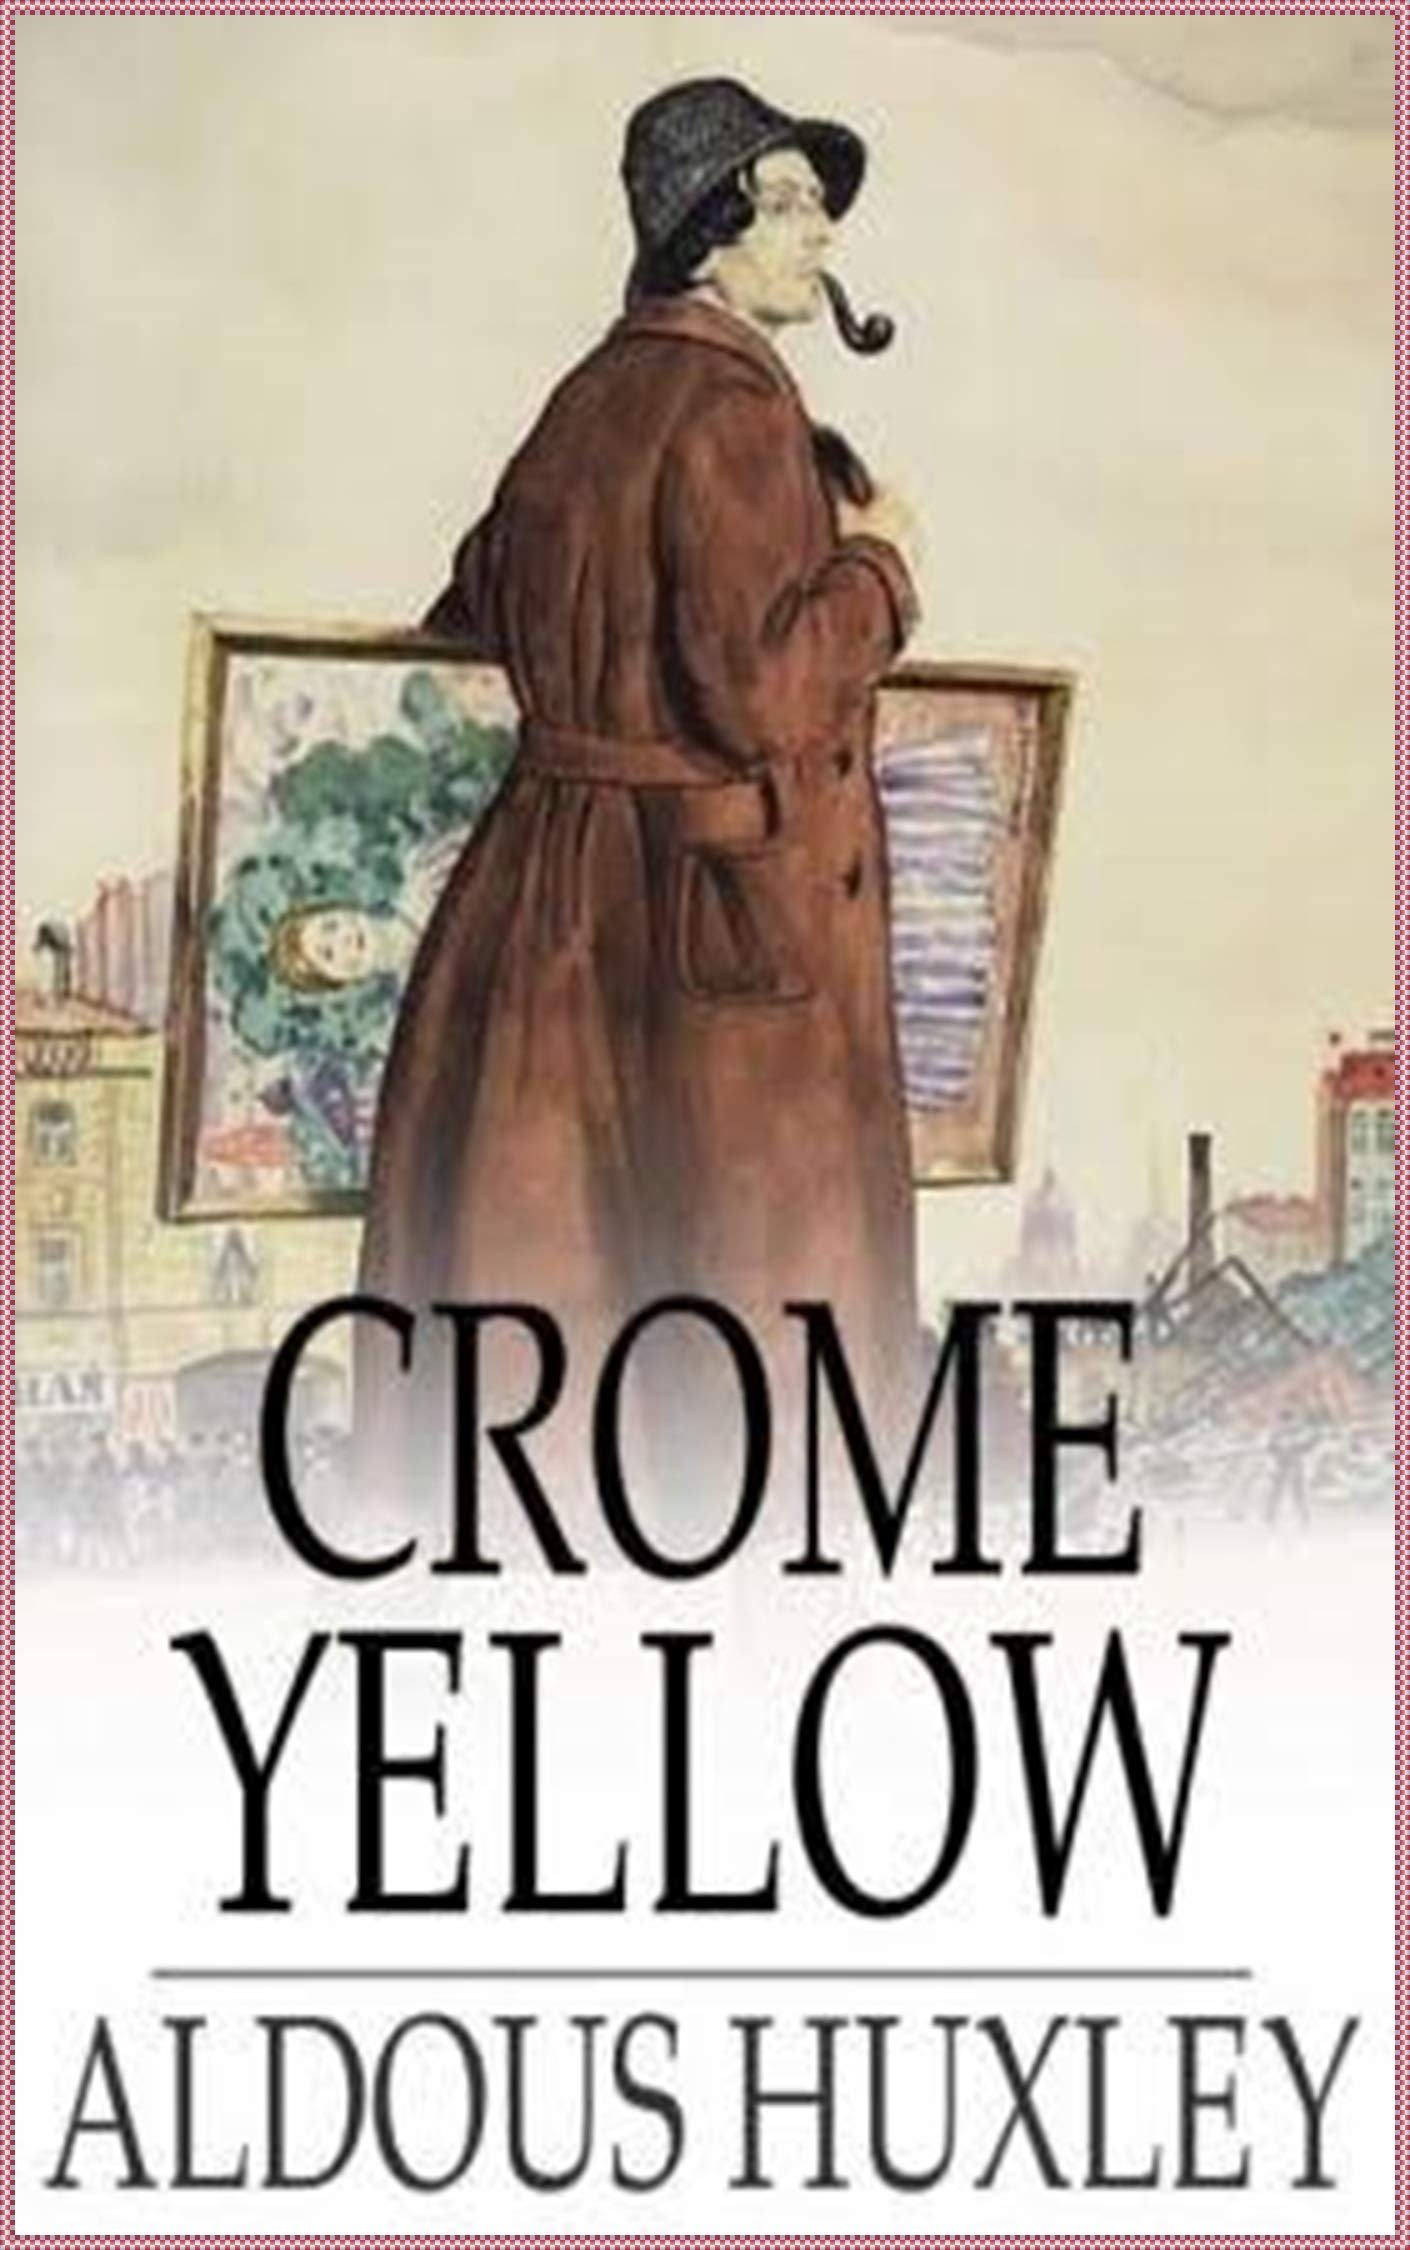 Crome Yellow - Aldous Huxley [modern library classics](annotated)